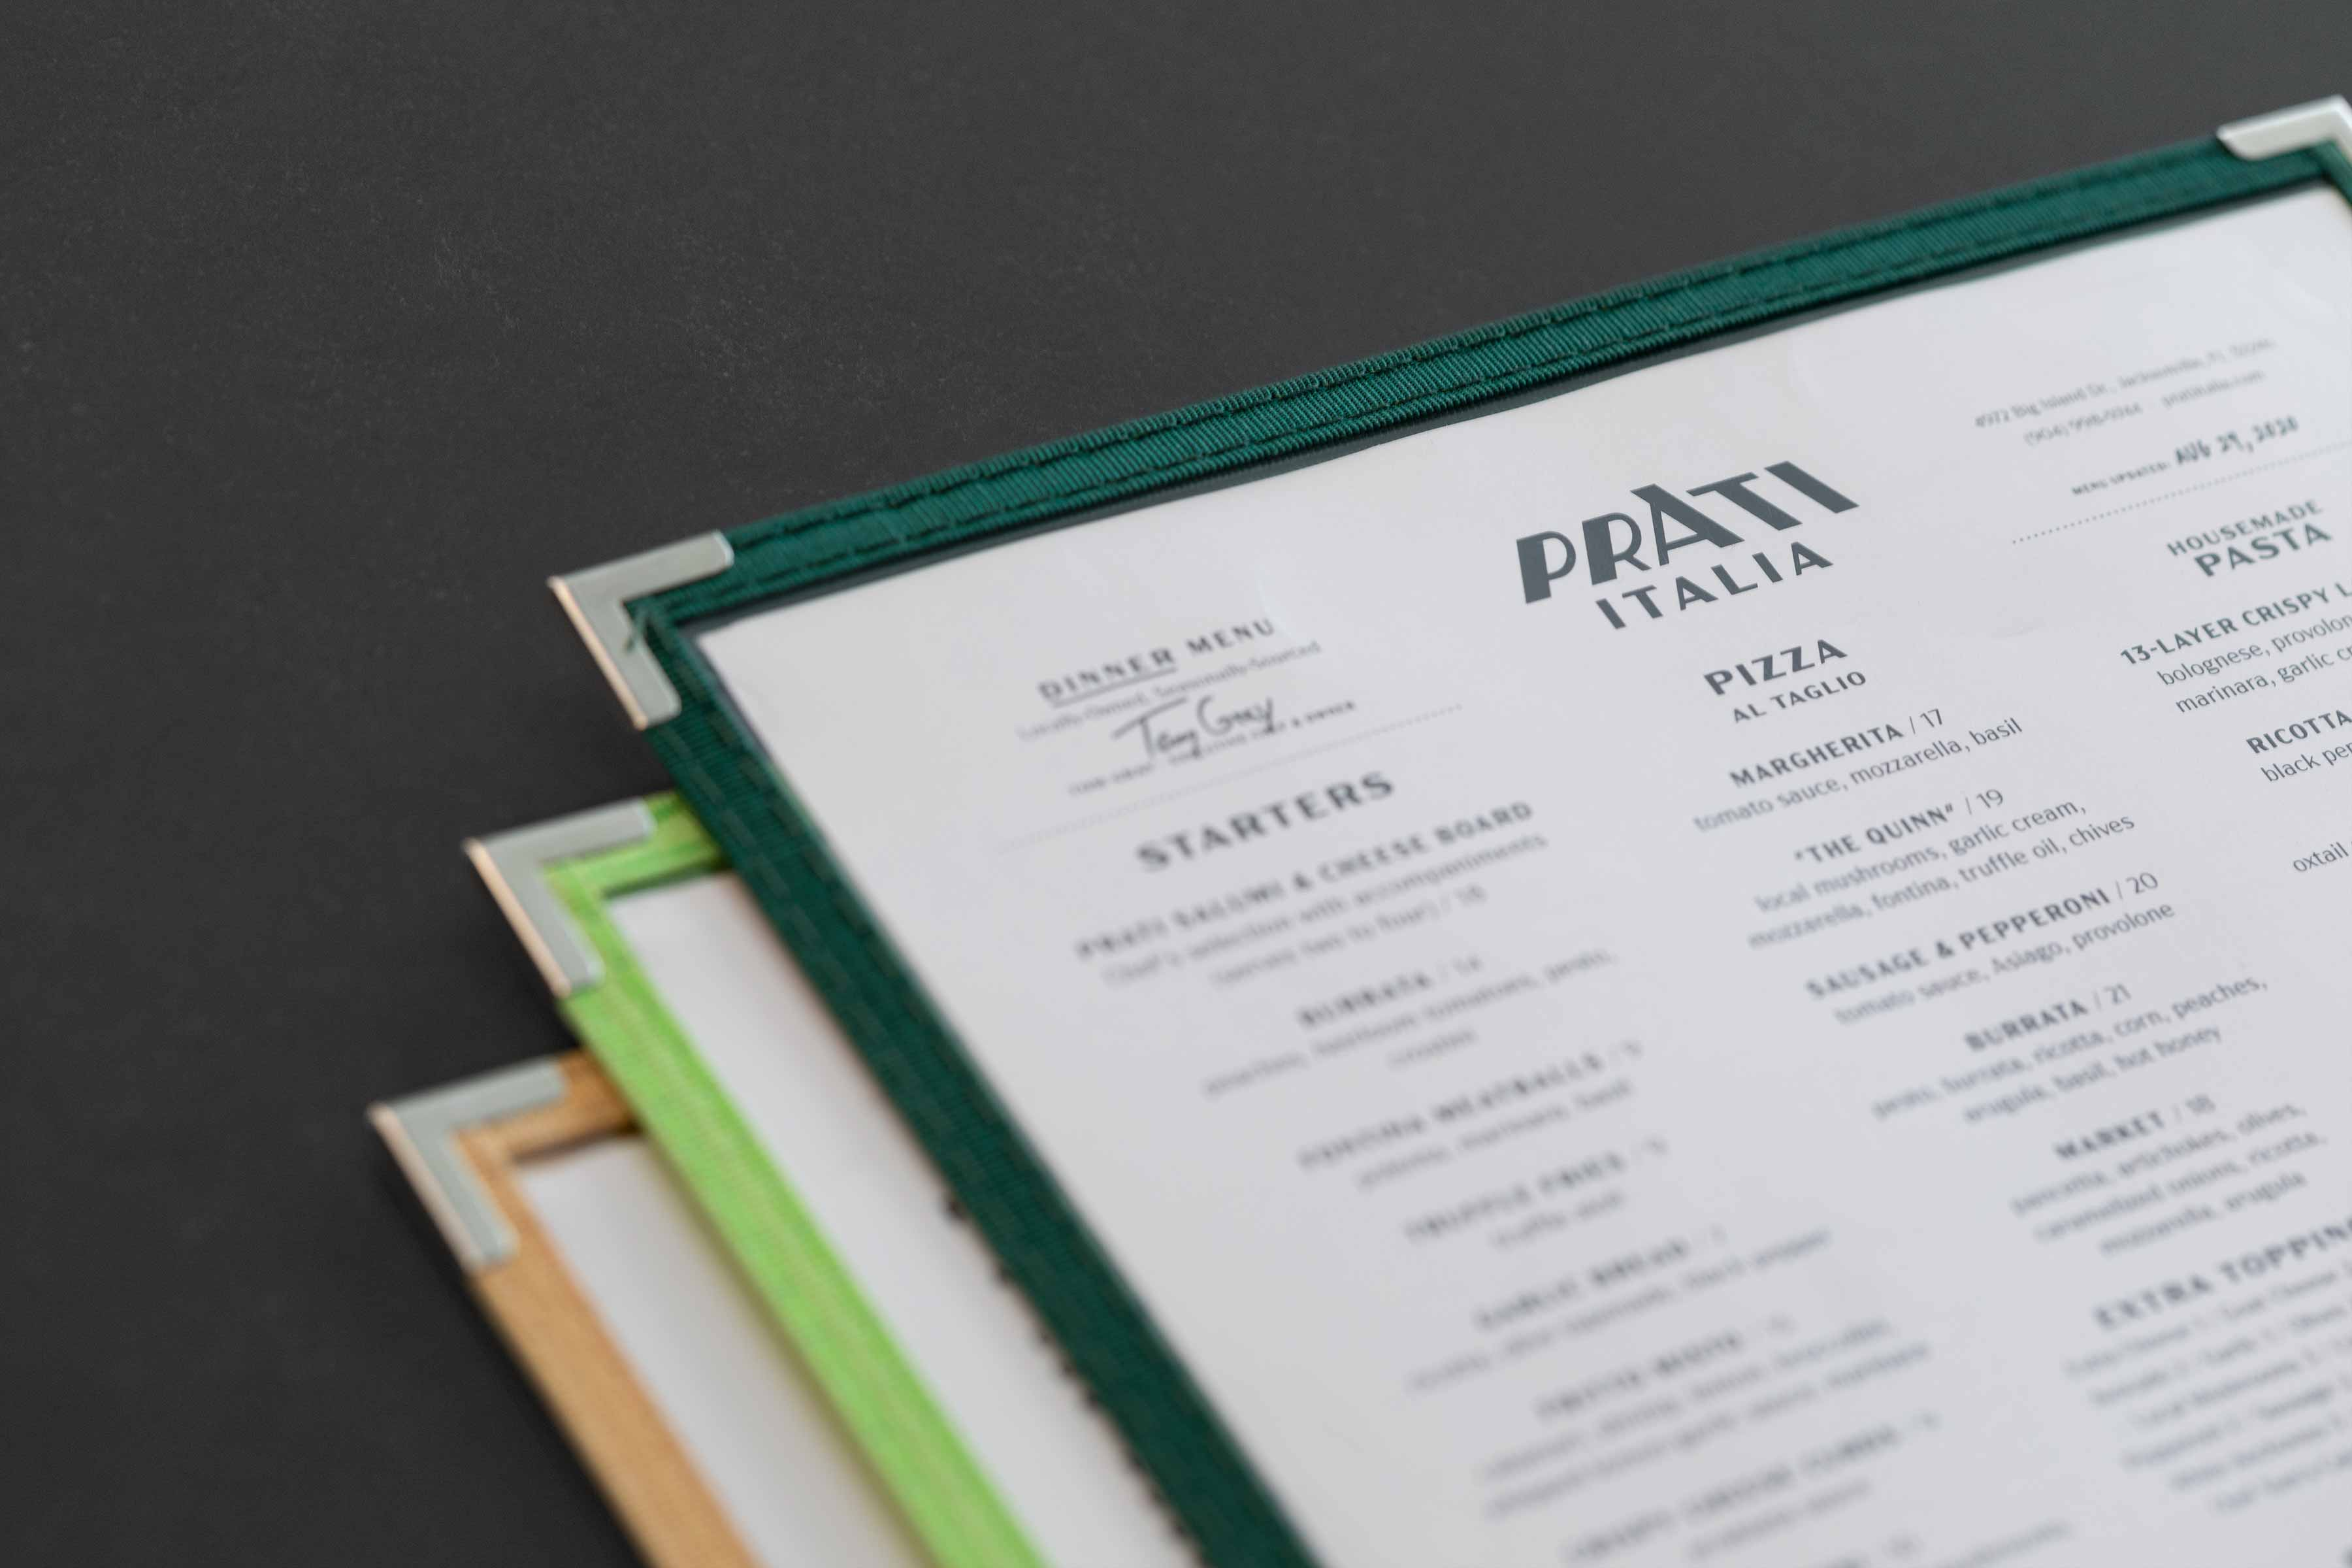 Close-up photo of 3 different colored menu covers for Prati Italia